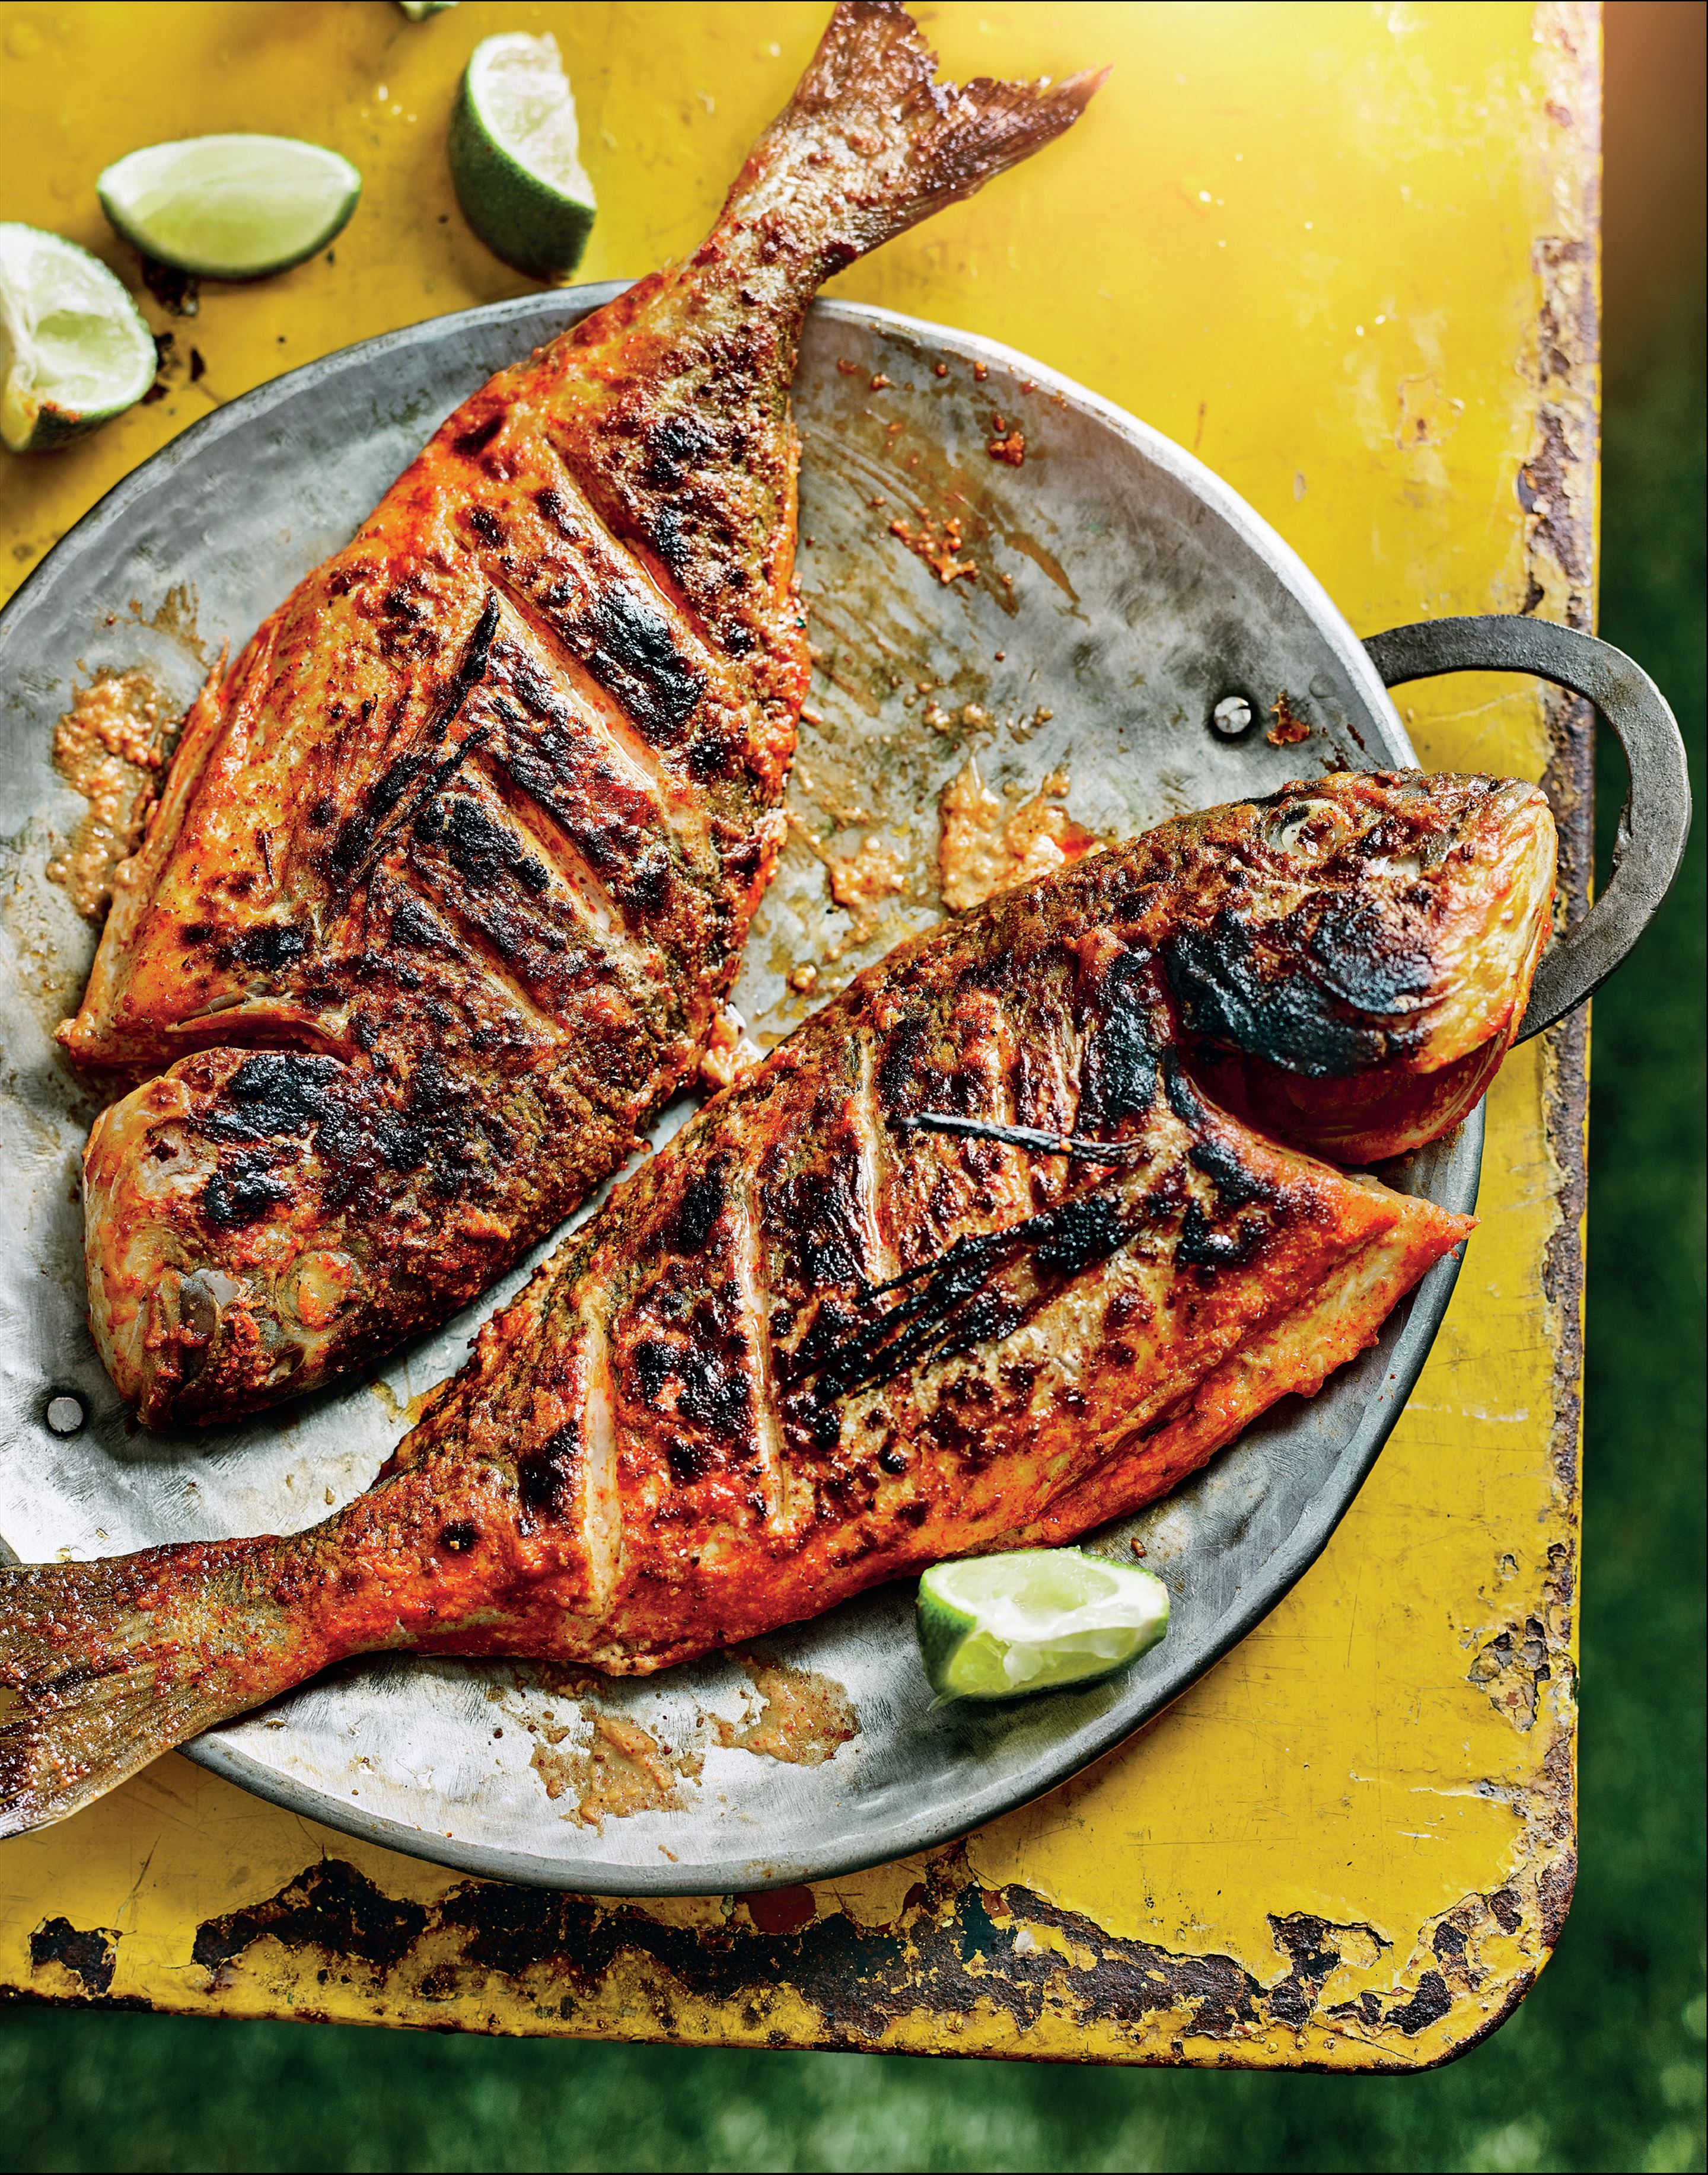 Barbecued tandoori-style sea bream